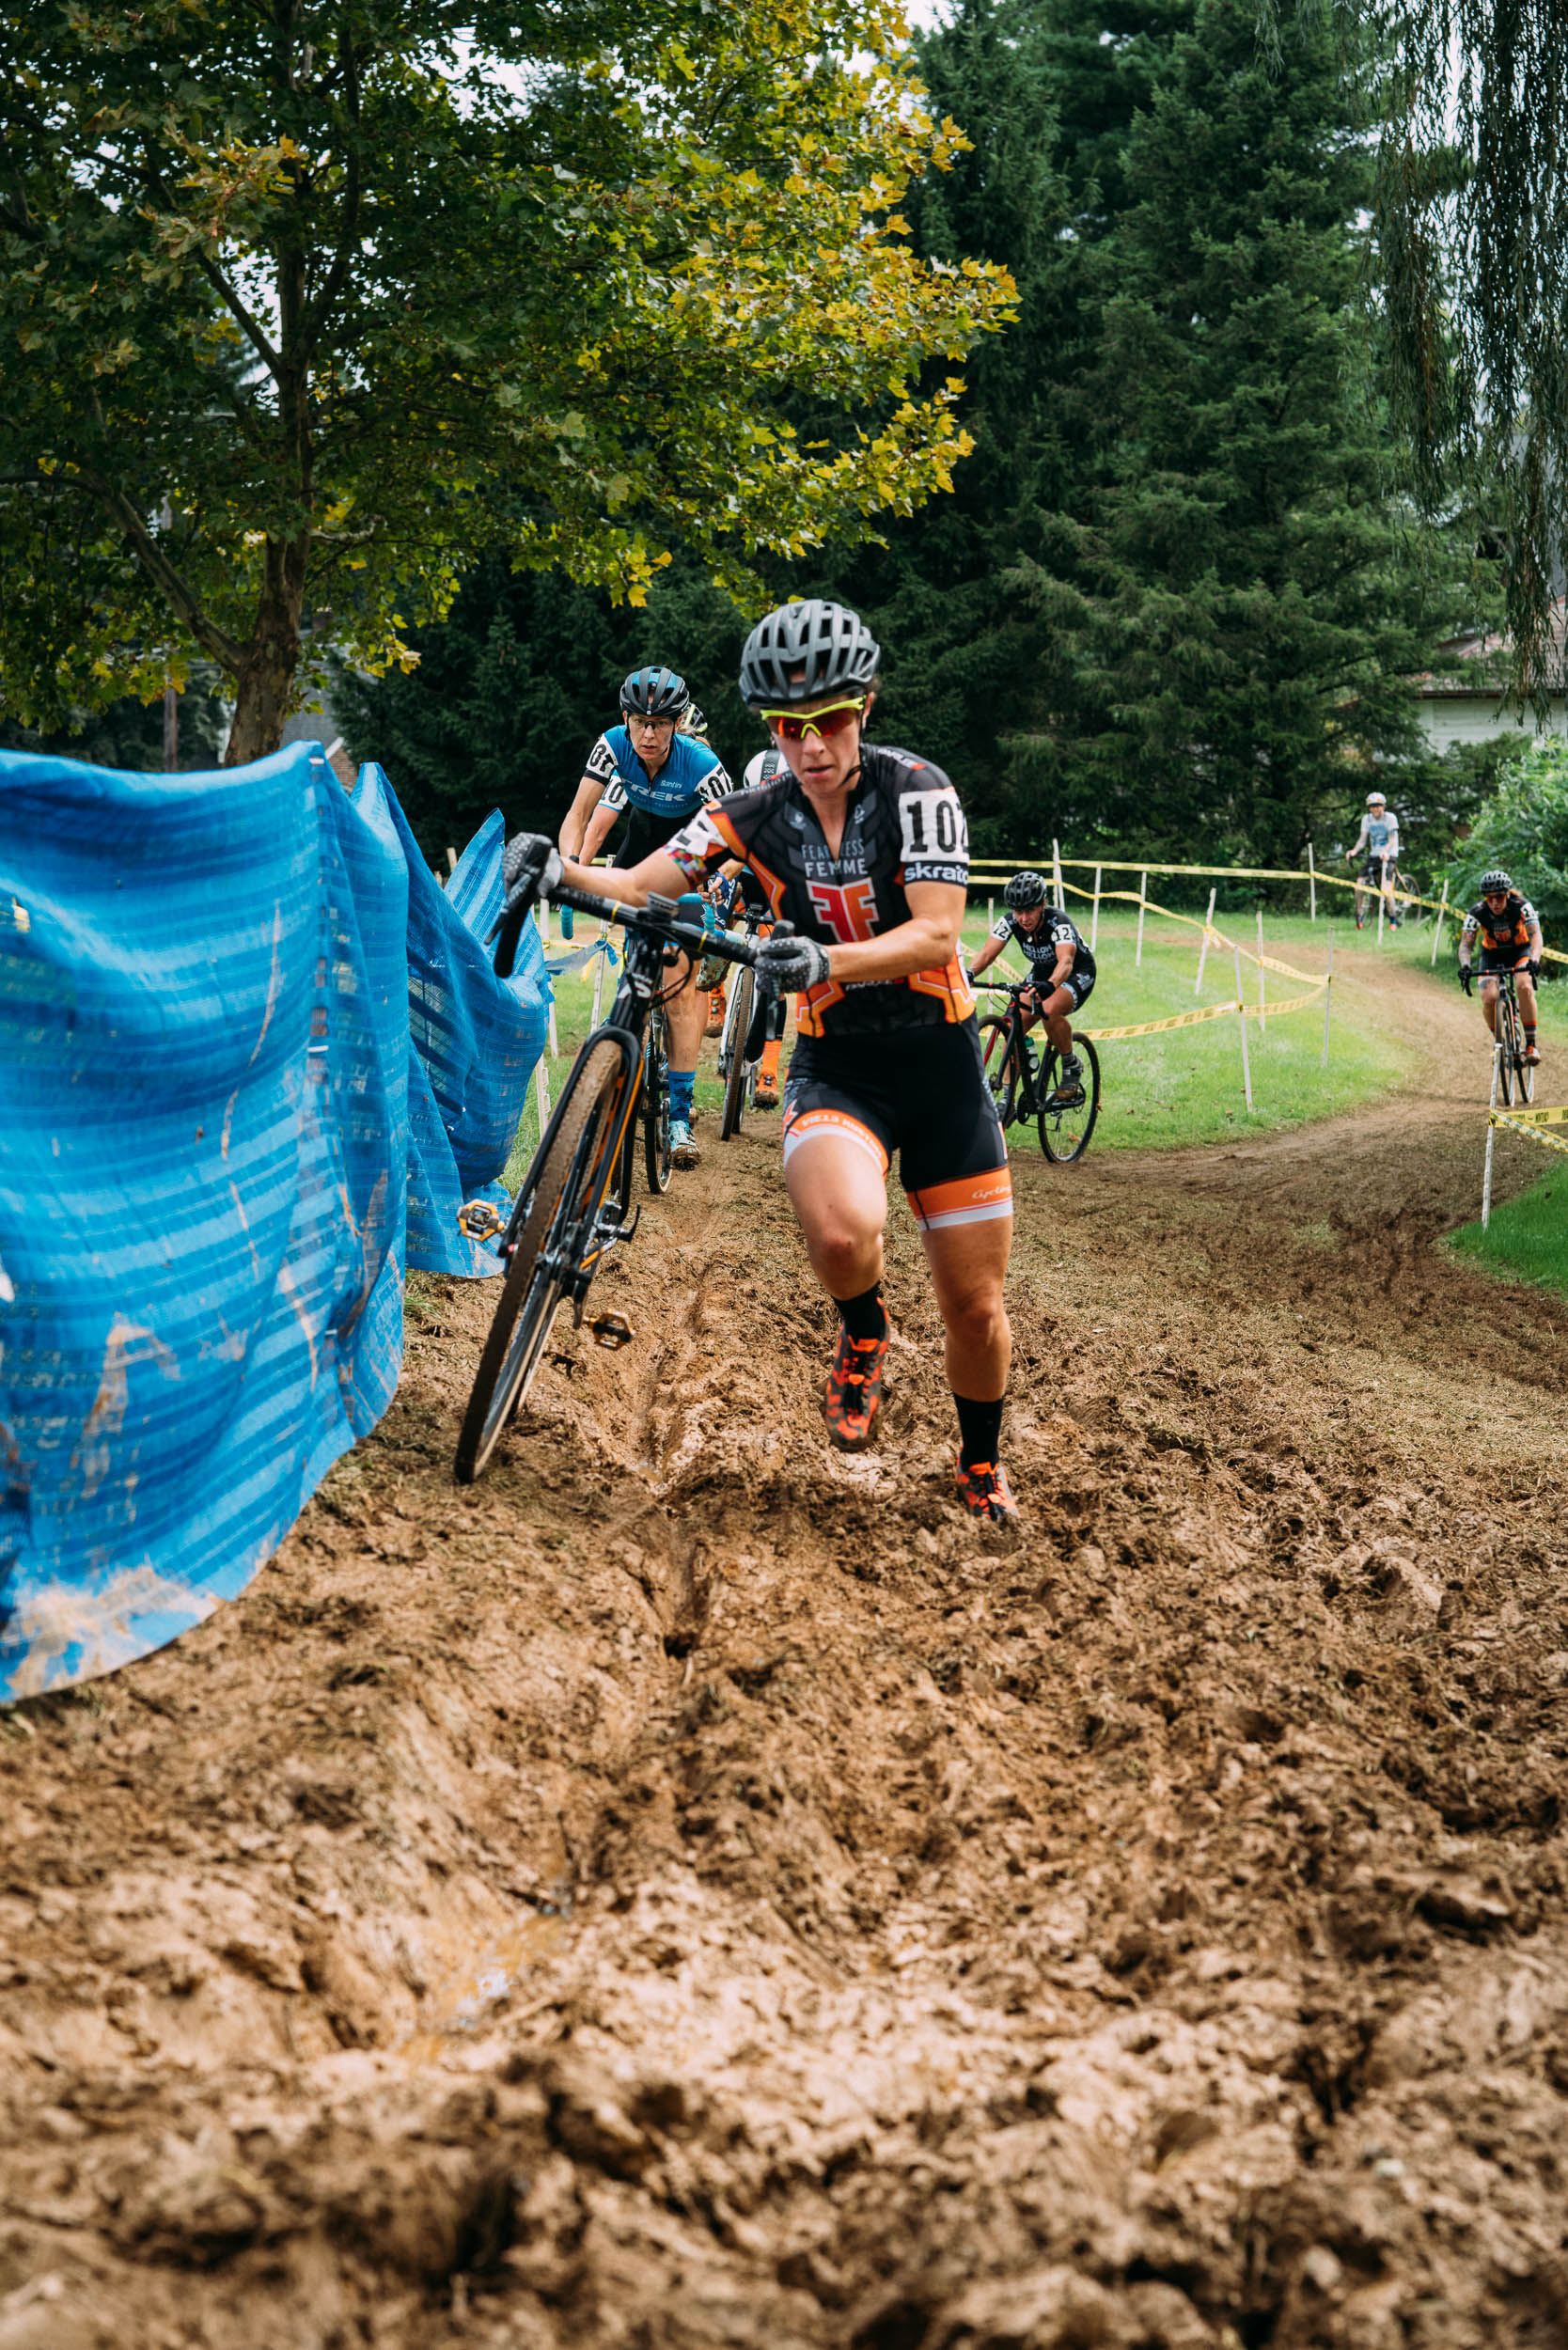 photo-rhetoric-to-be-determined-nittany-cyclocross-1123.jpg